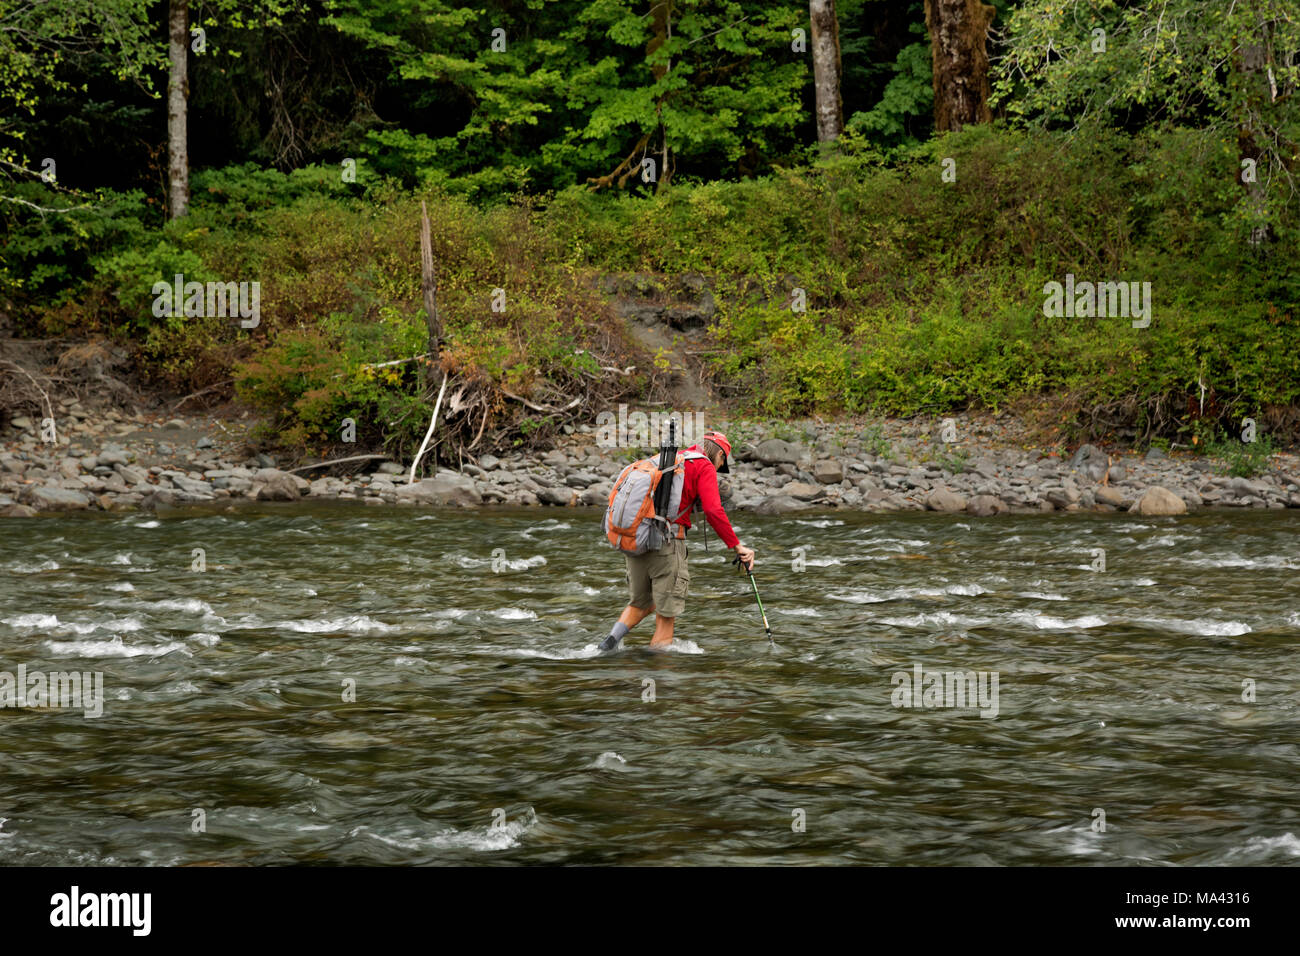 WA13950-00...WASHINGTON - Hiker fording the Queets River when the waterflow is low to access the Queets River Trail in Olympic National Park. - Stock Image